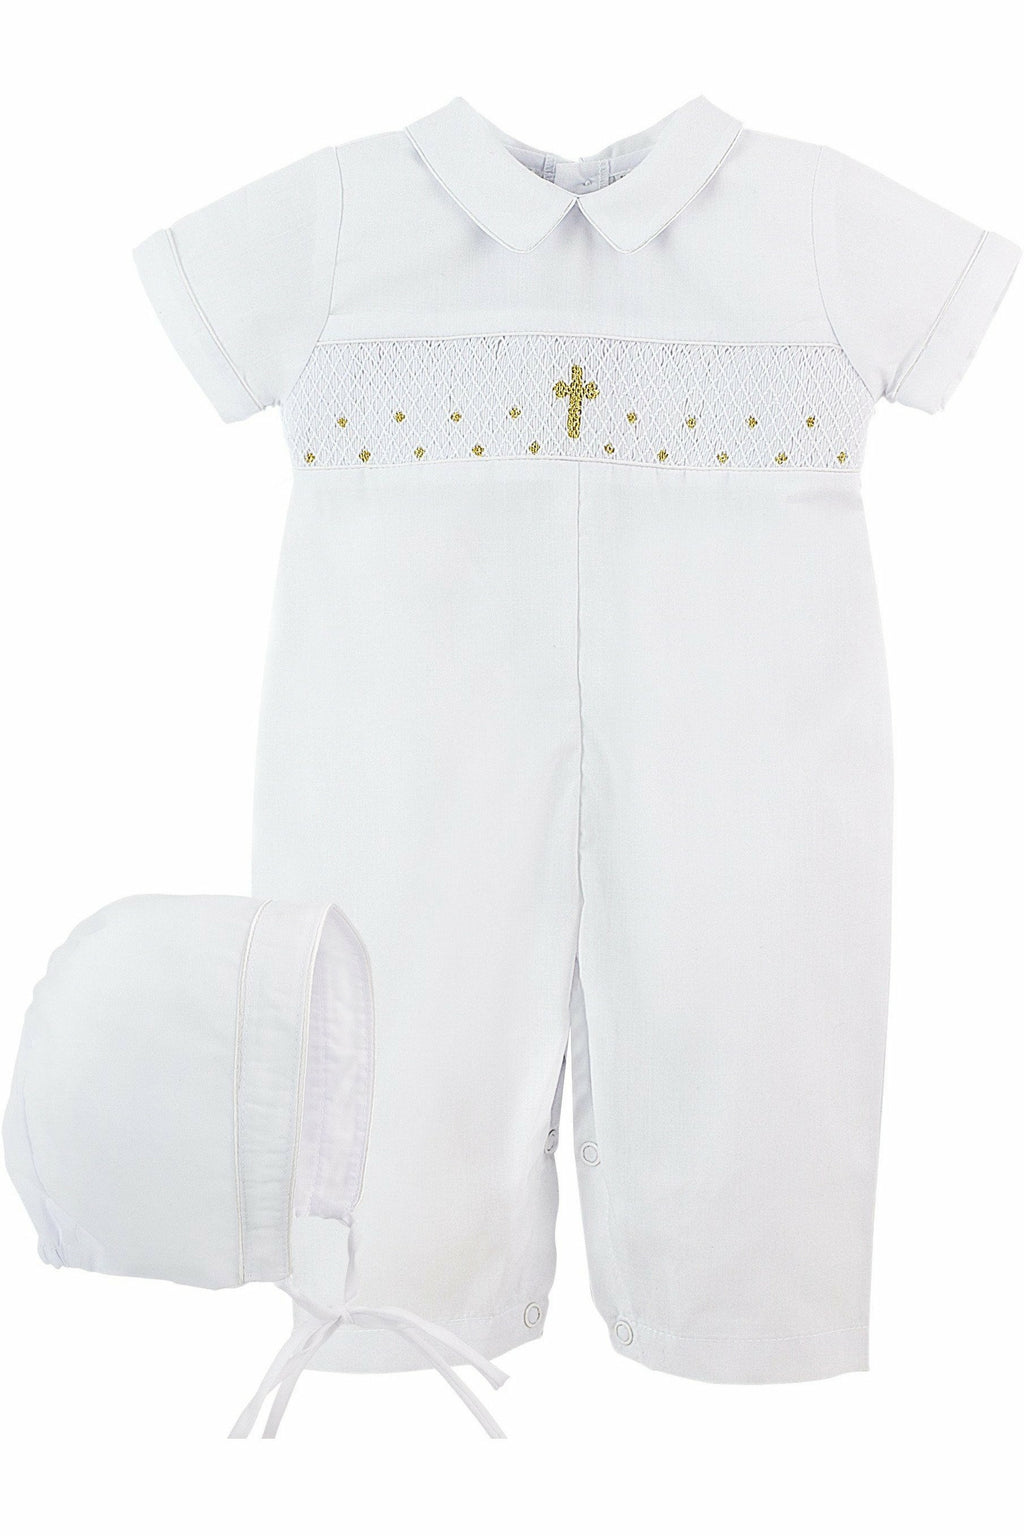 Christening Baptism Boys Hand Smocked Cross Longall matching Bonnet